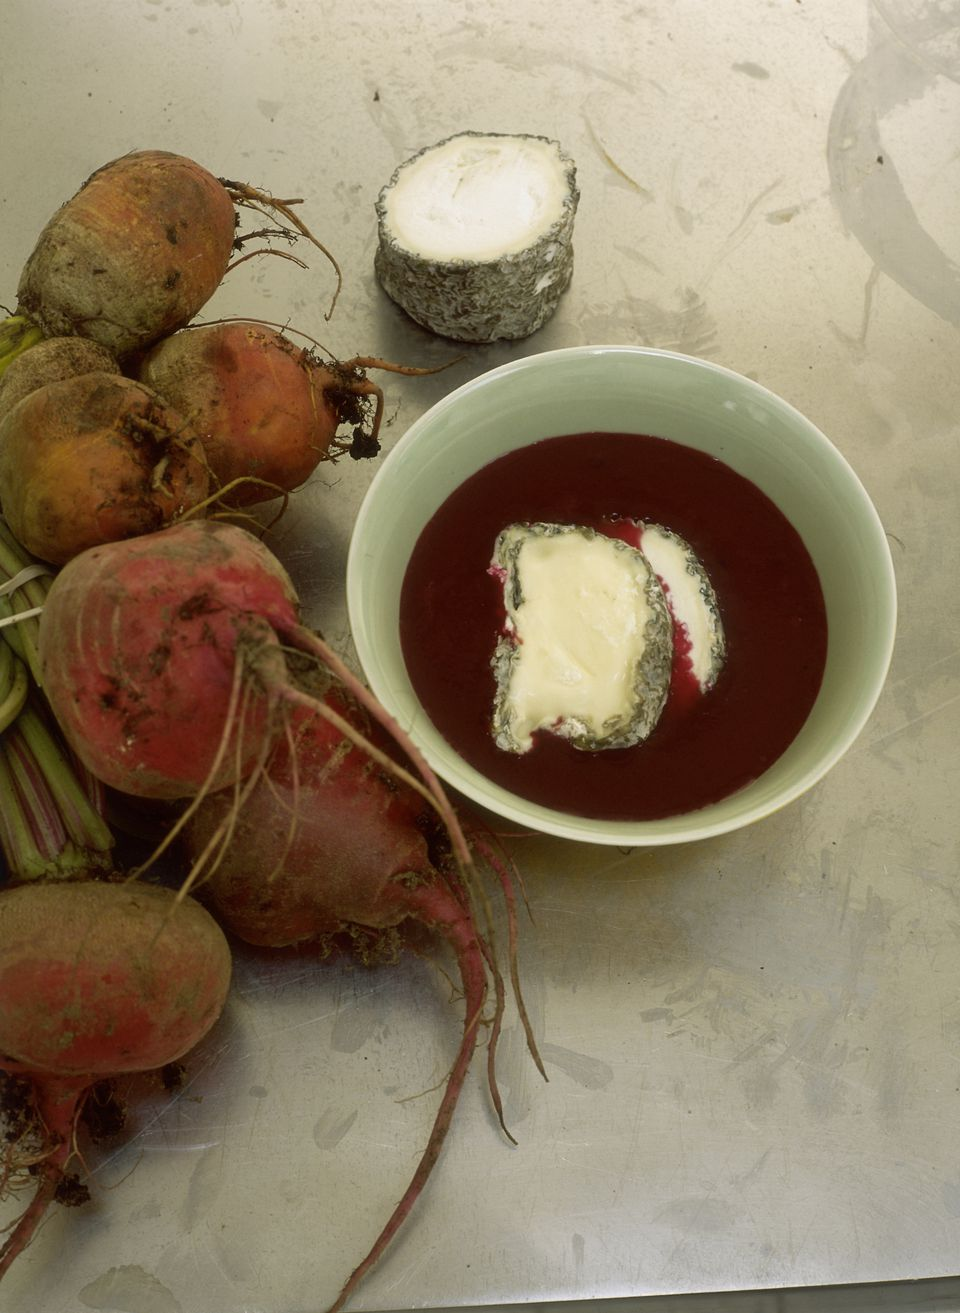 Beetroot soup with slice of ash-dusted goats cheese on top